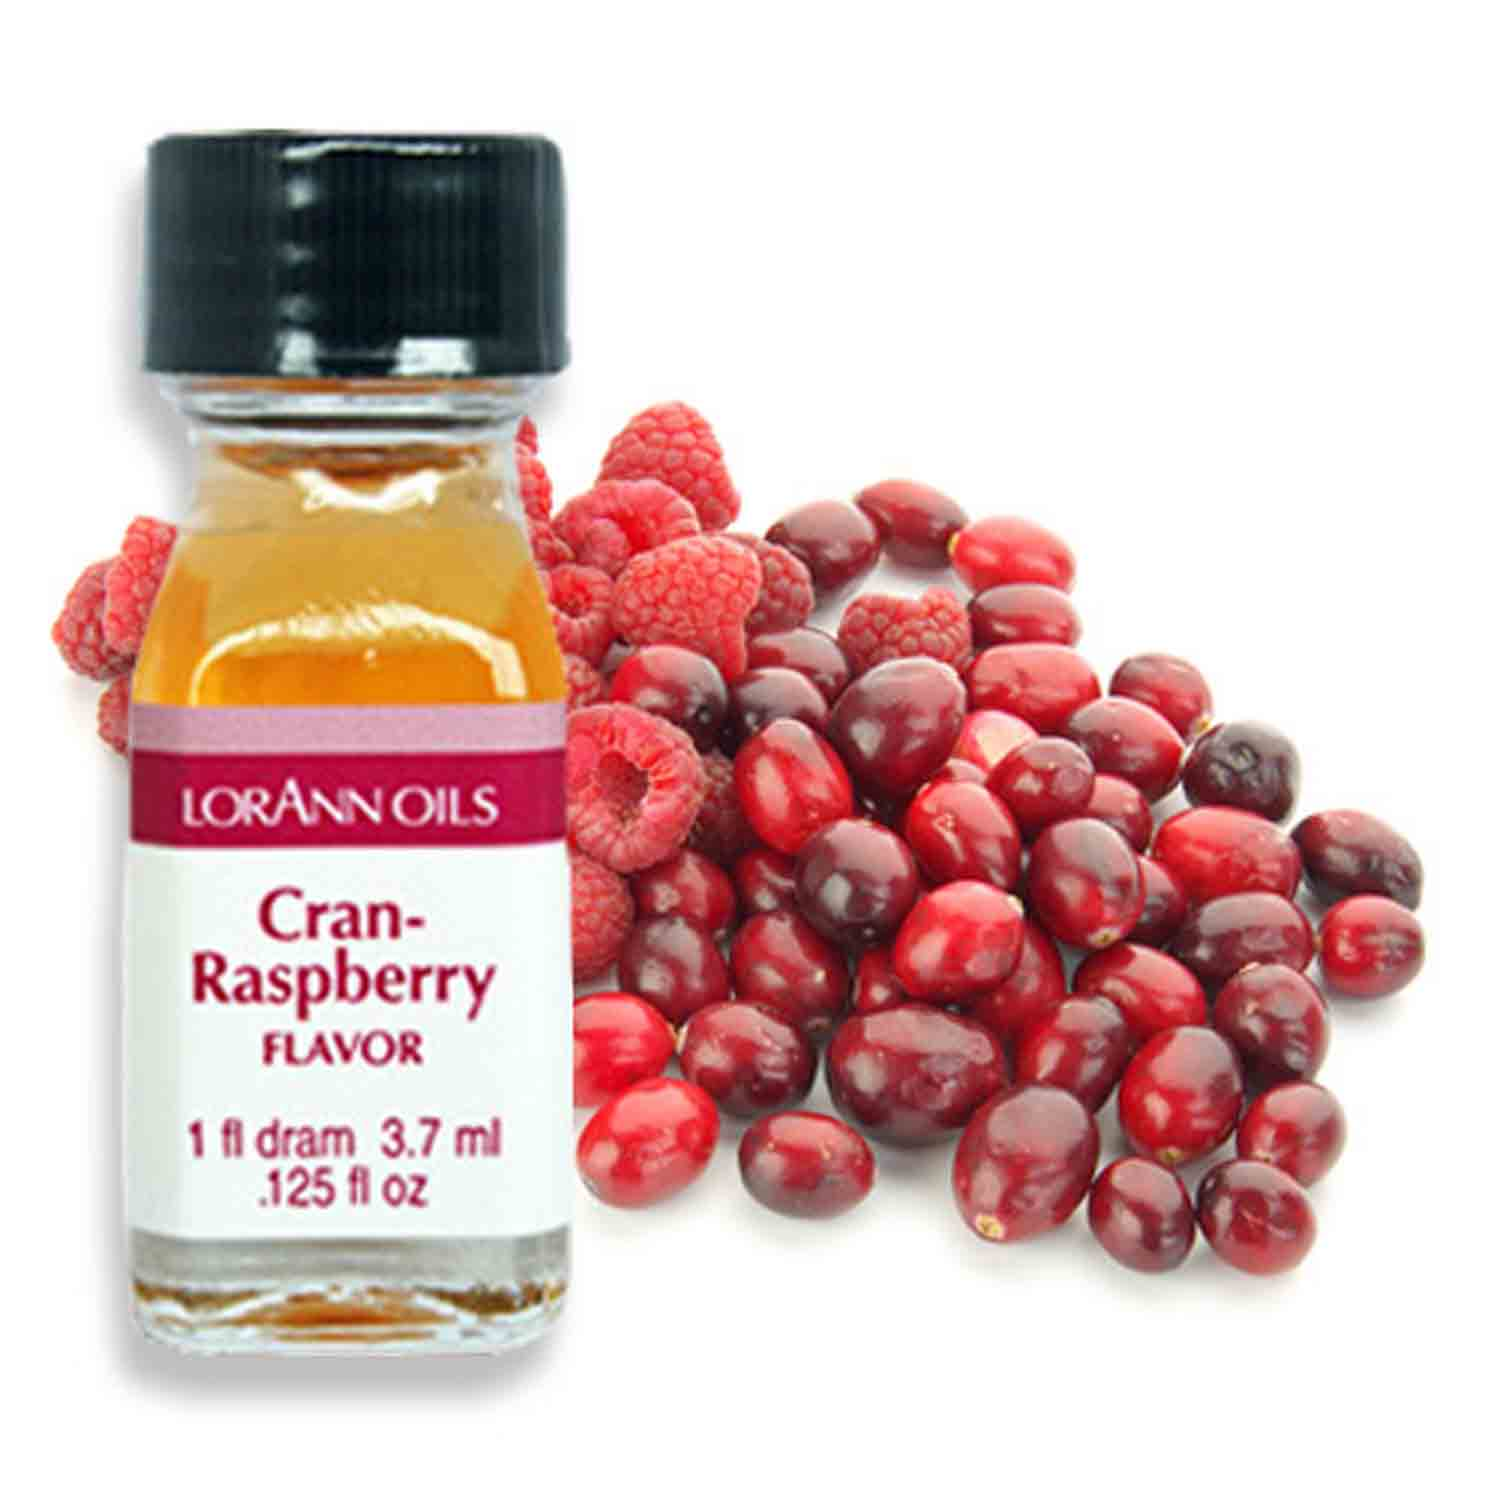 Cran Raspberry LorAnn Super-Strength Oil